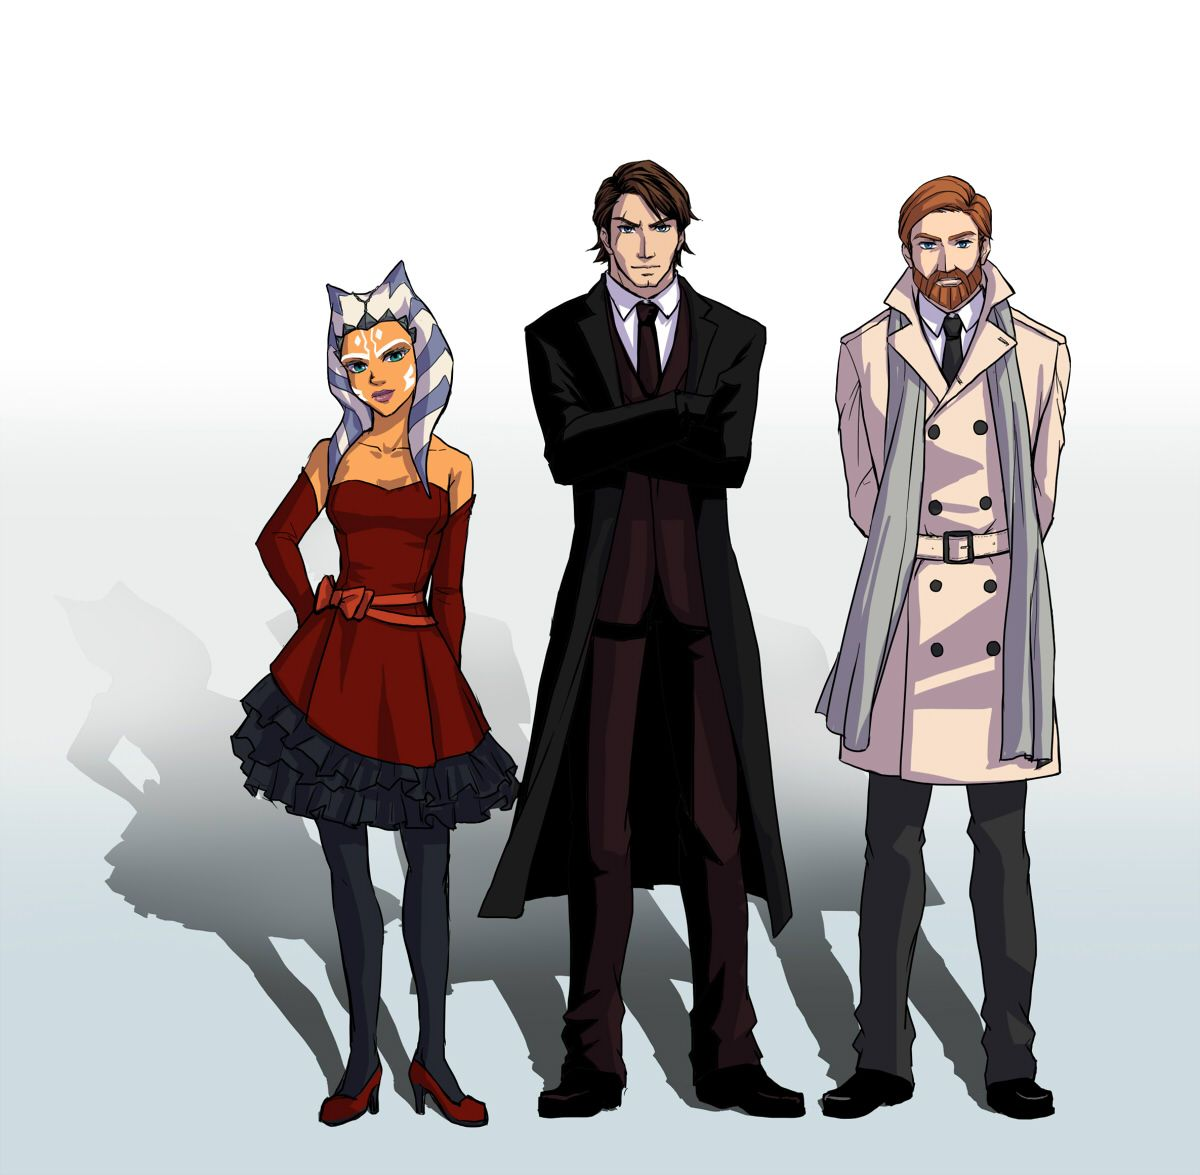 rriyancyy777: The jedis in suits and dress